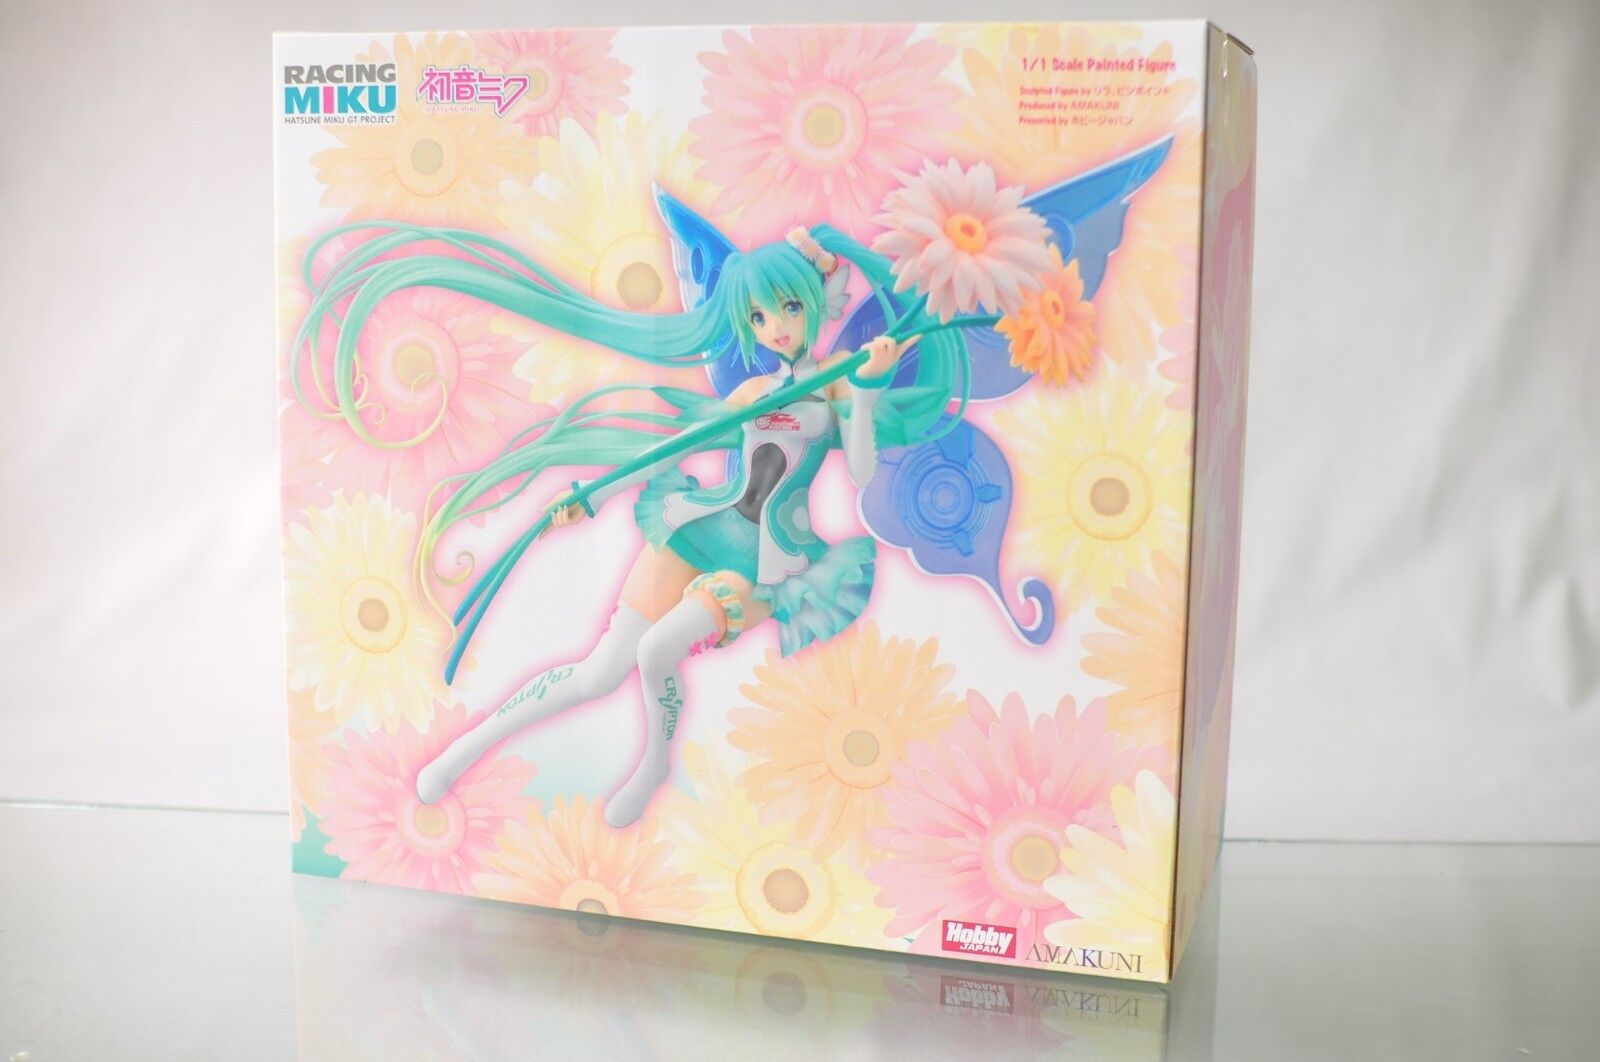 HOBBY JAPAN 1 1 GT Project RACING MIKU 2017 Amakuni Hobby Giappone 498932511061